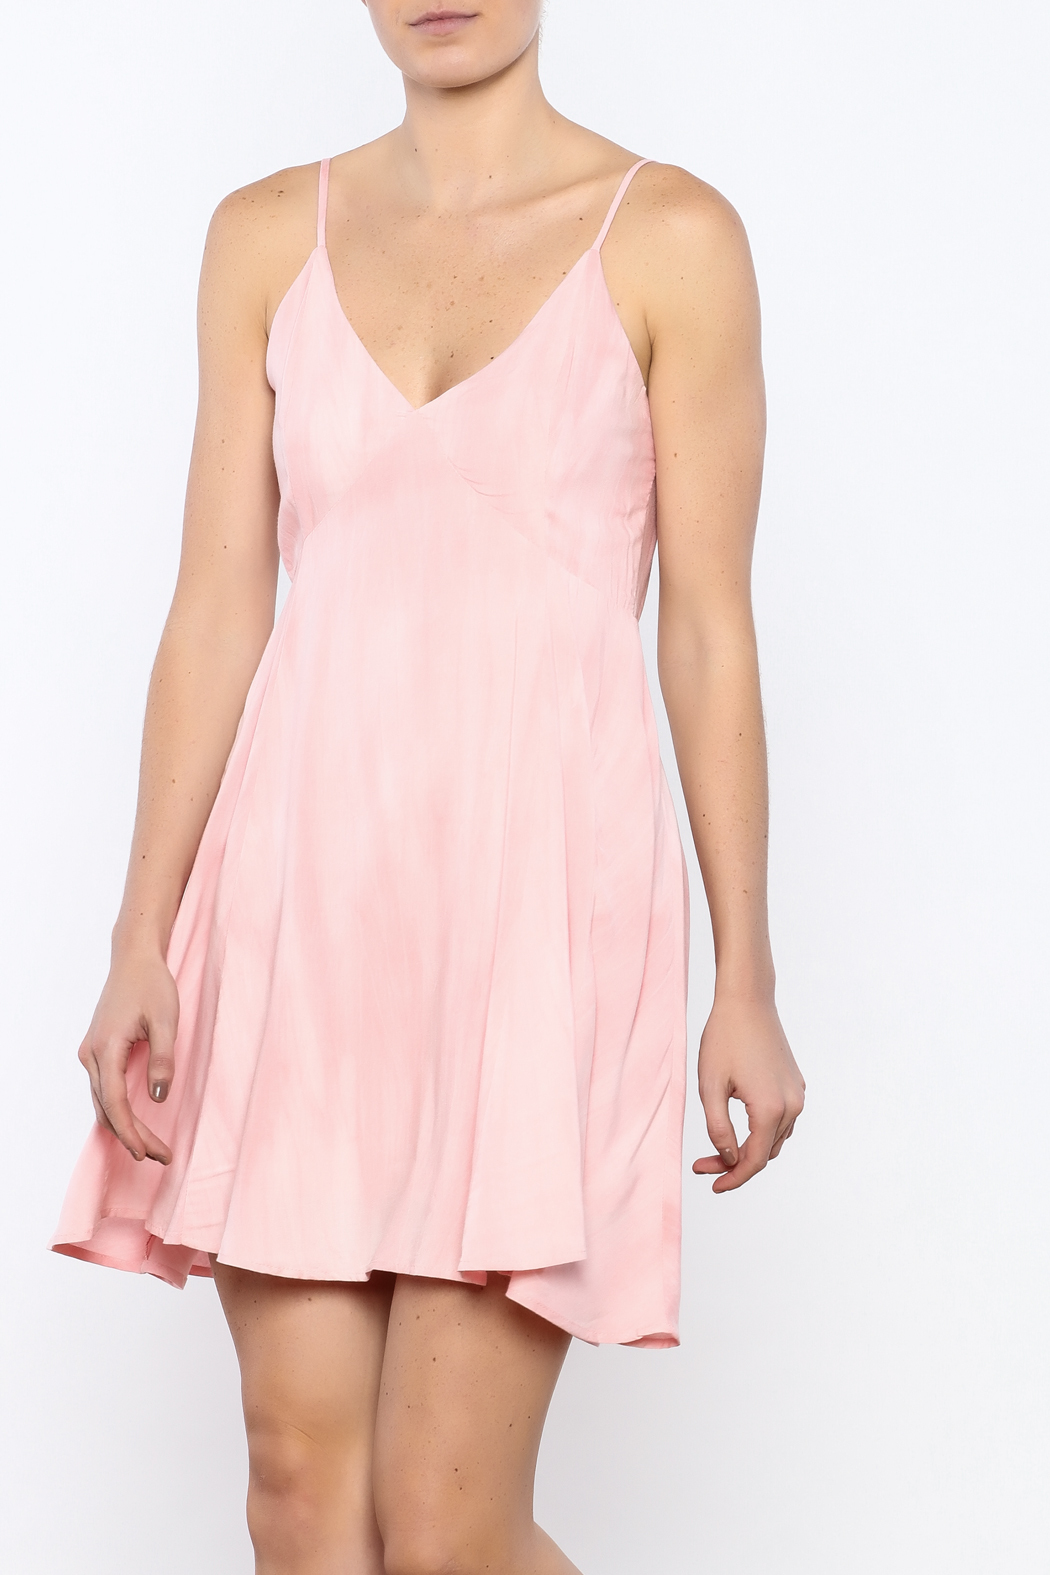 Bacio Blush Flared Dress - Front Cropped Image